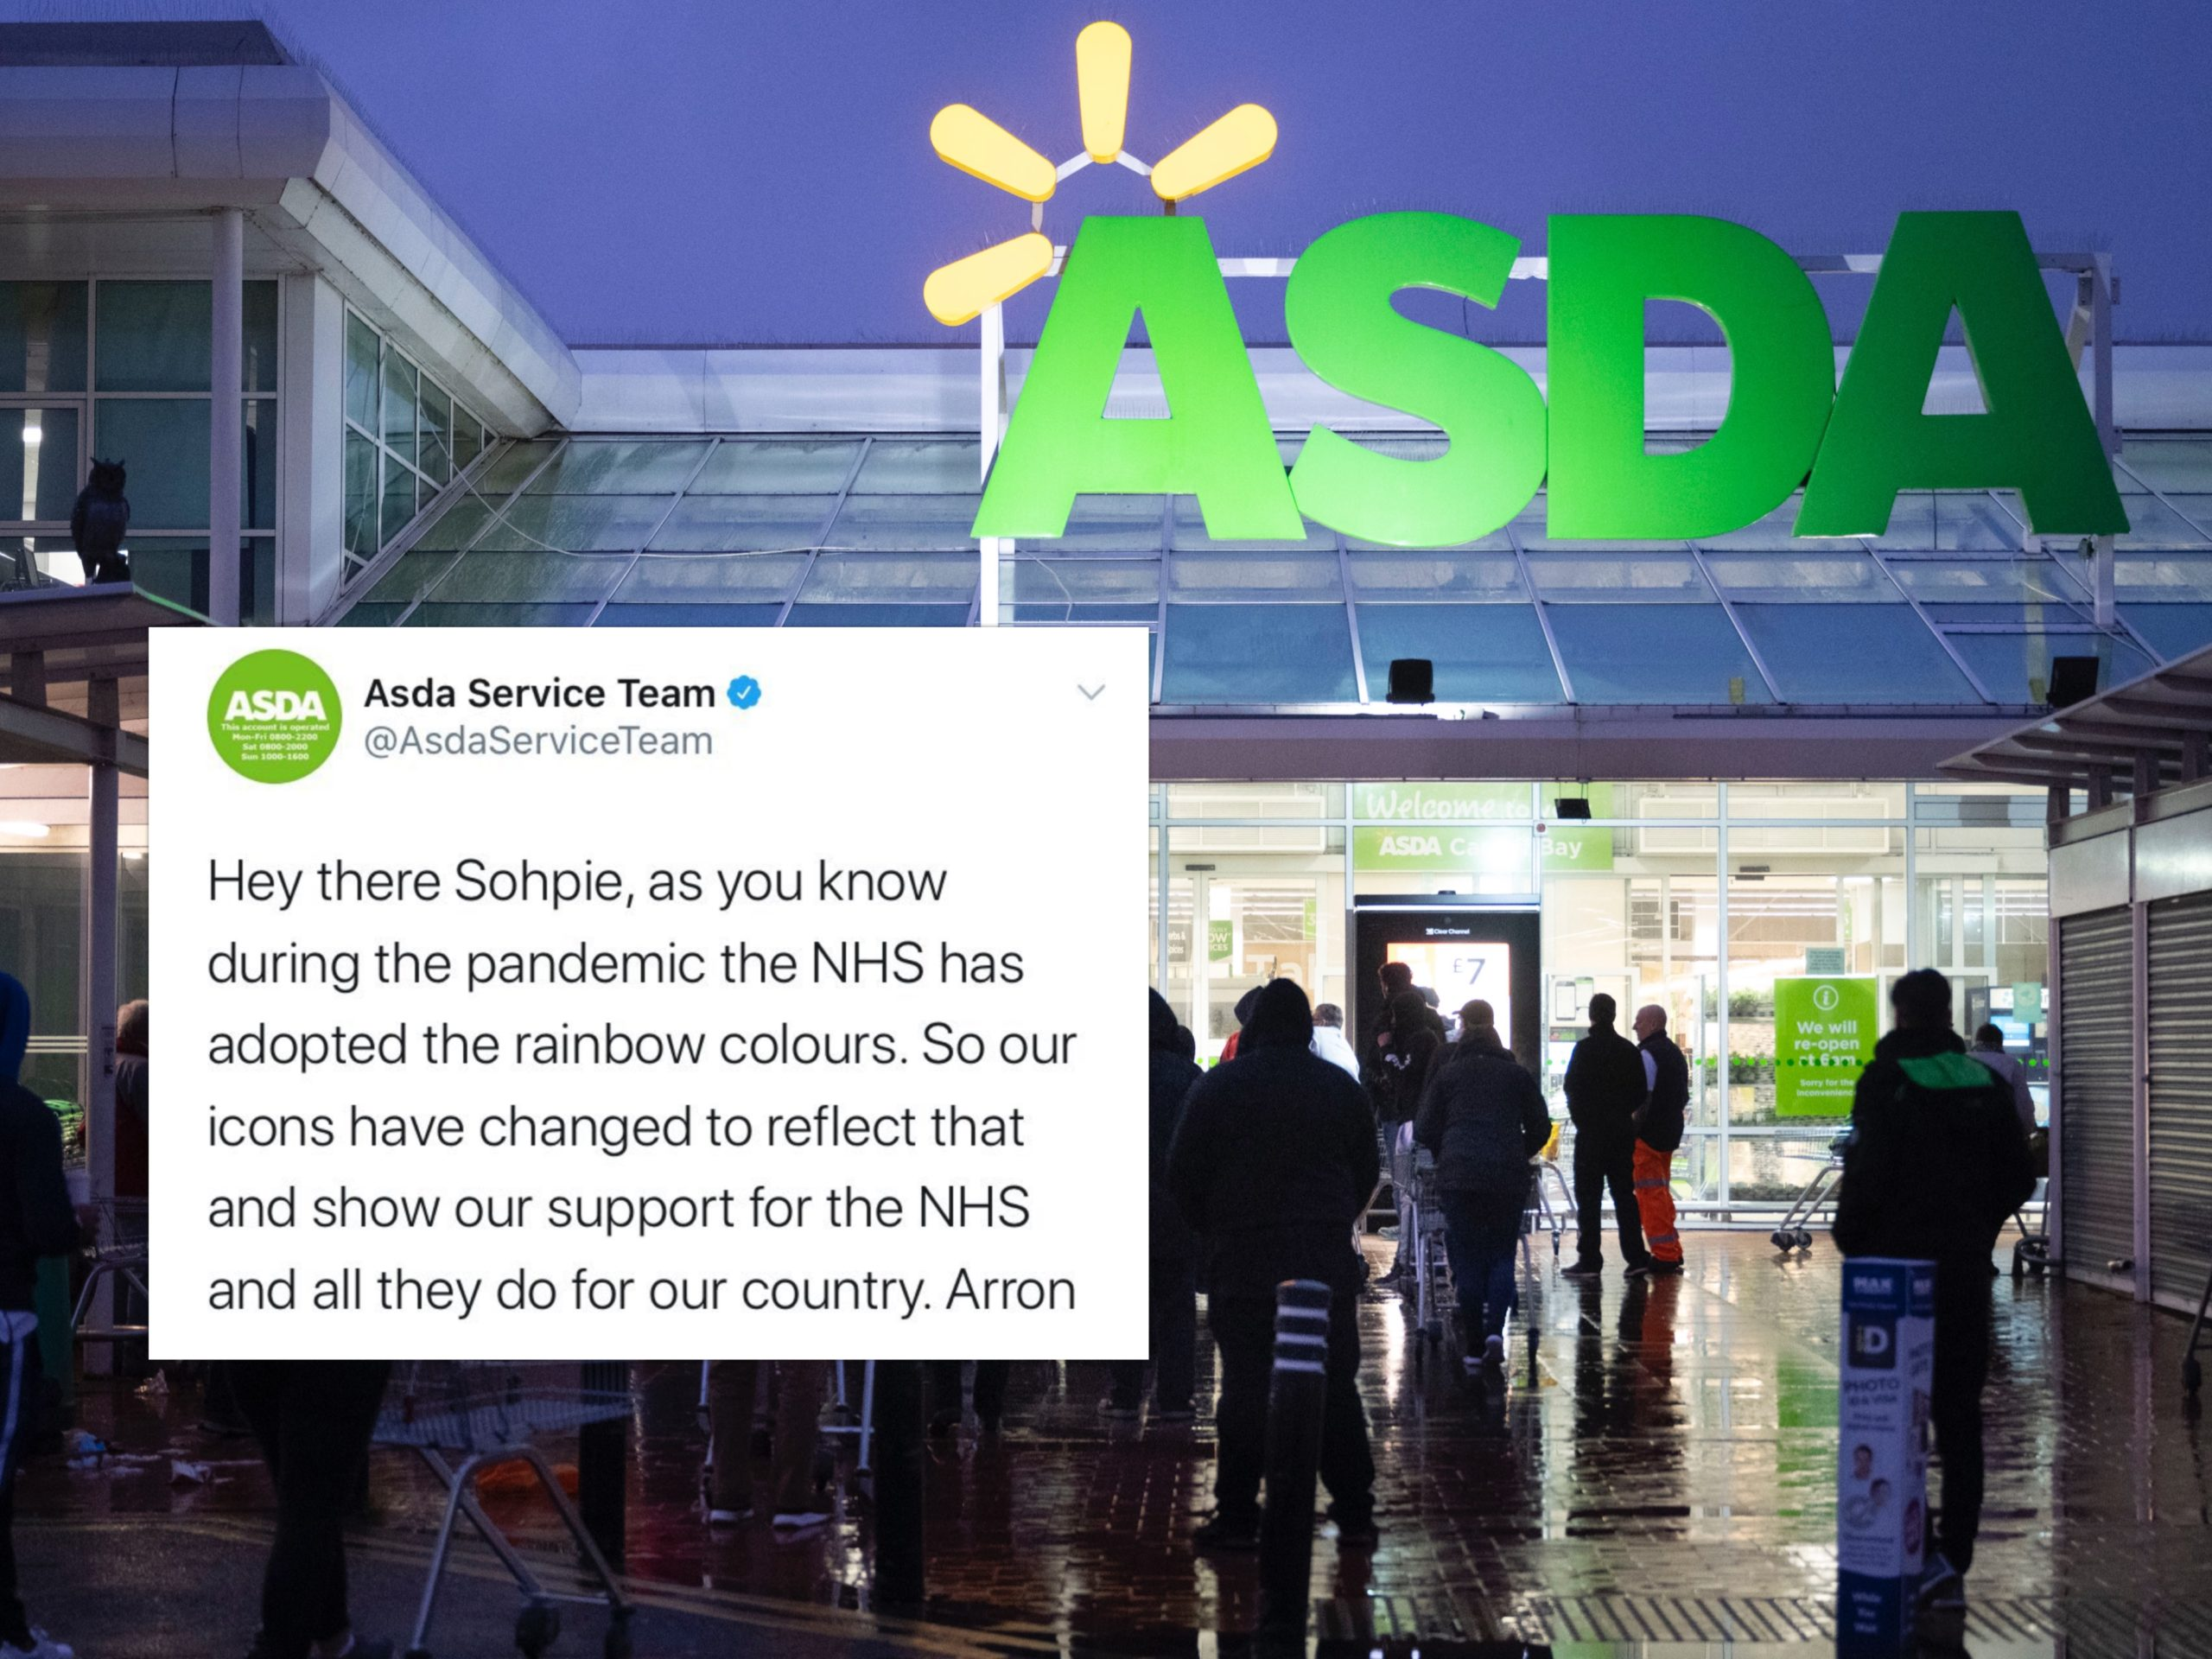 Asda 'accidentally' said it had painted its logo with the Pride flag to support… the NHS. The backlash was swift and severe